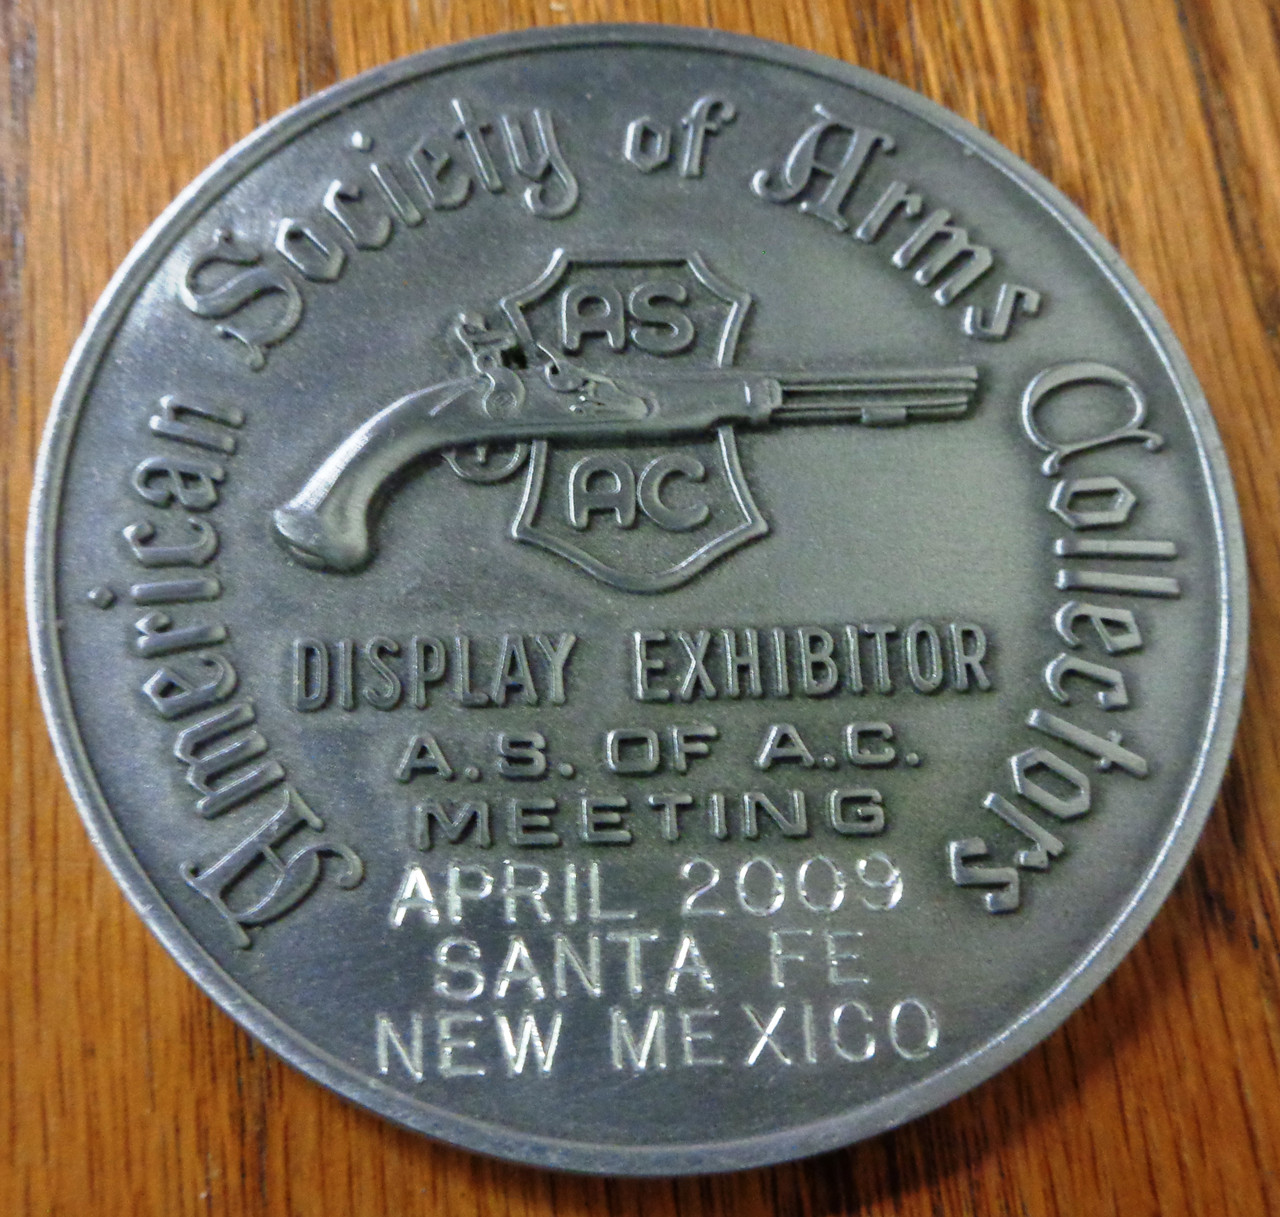 American Society of Arms Collectors Display Exhibitor Medal - 2009 New Mexico